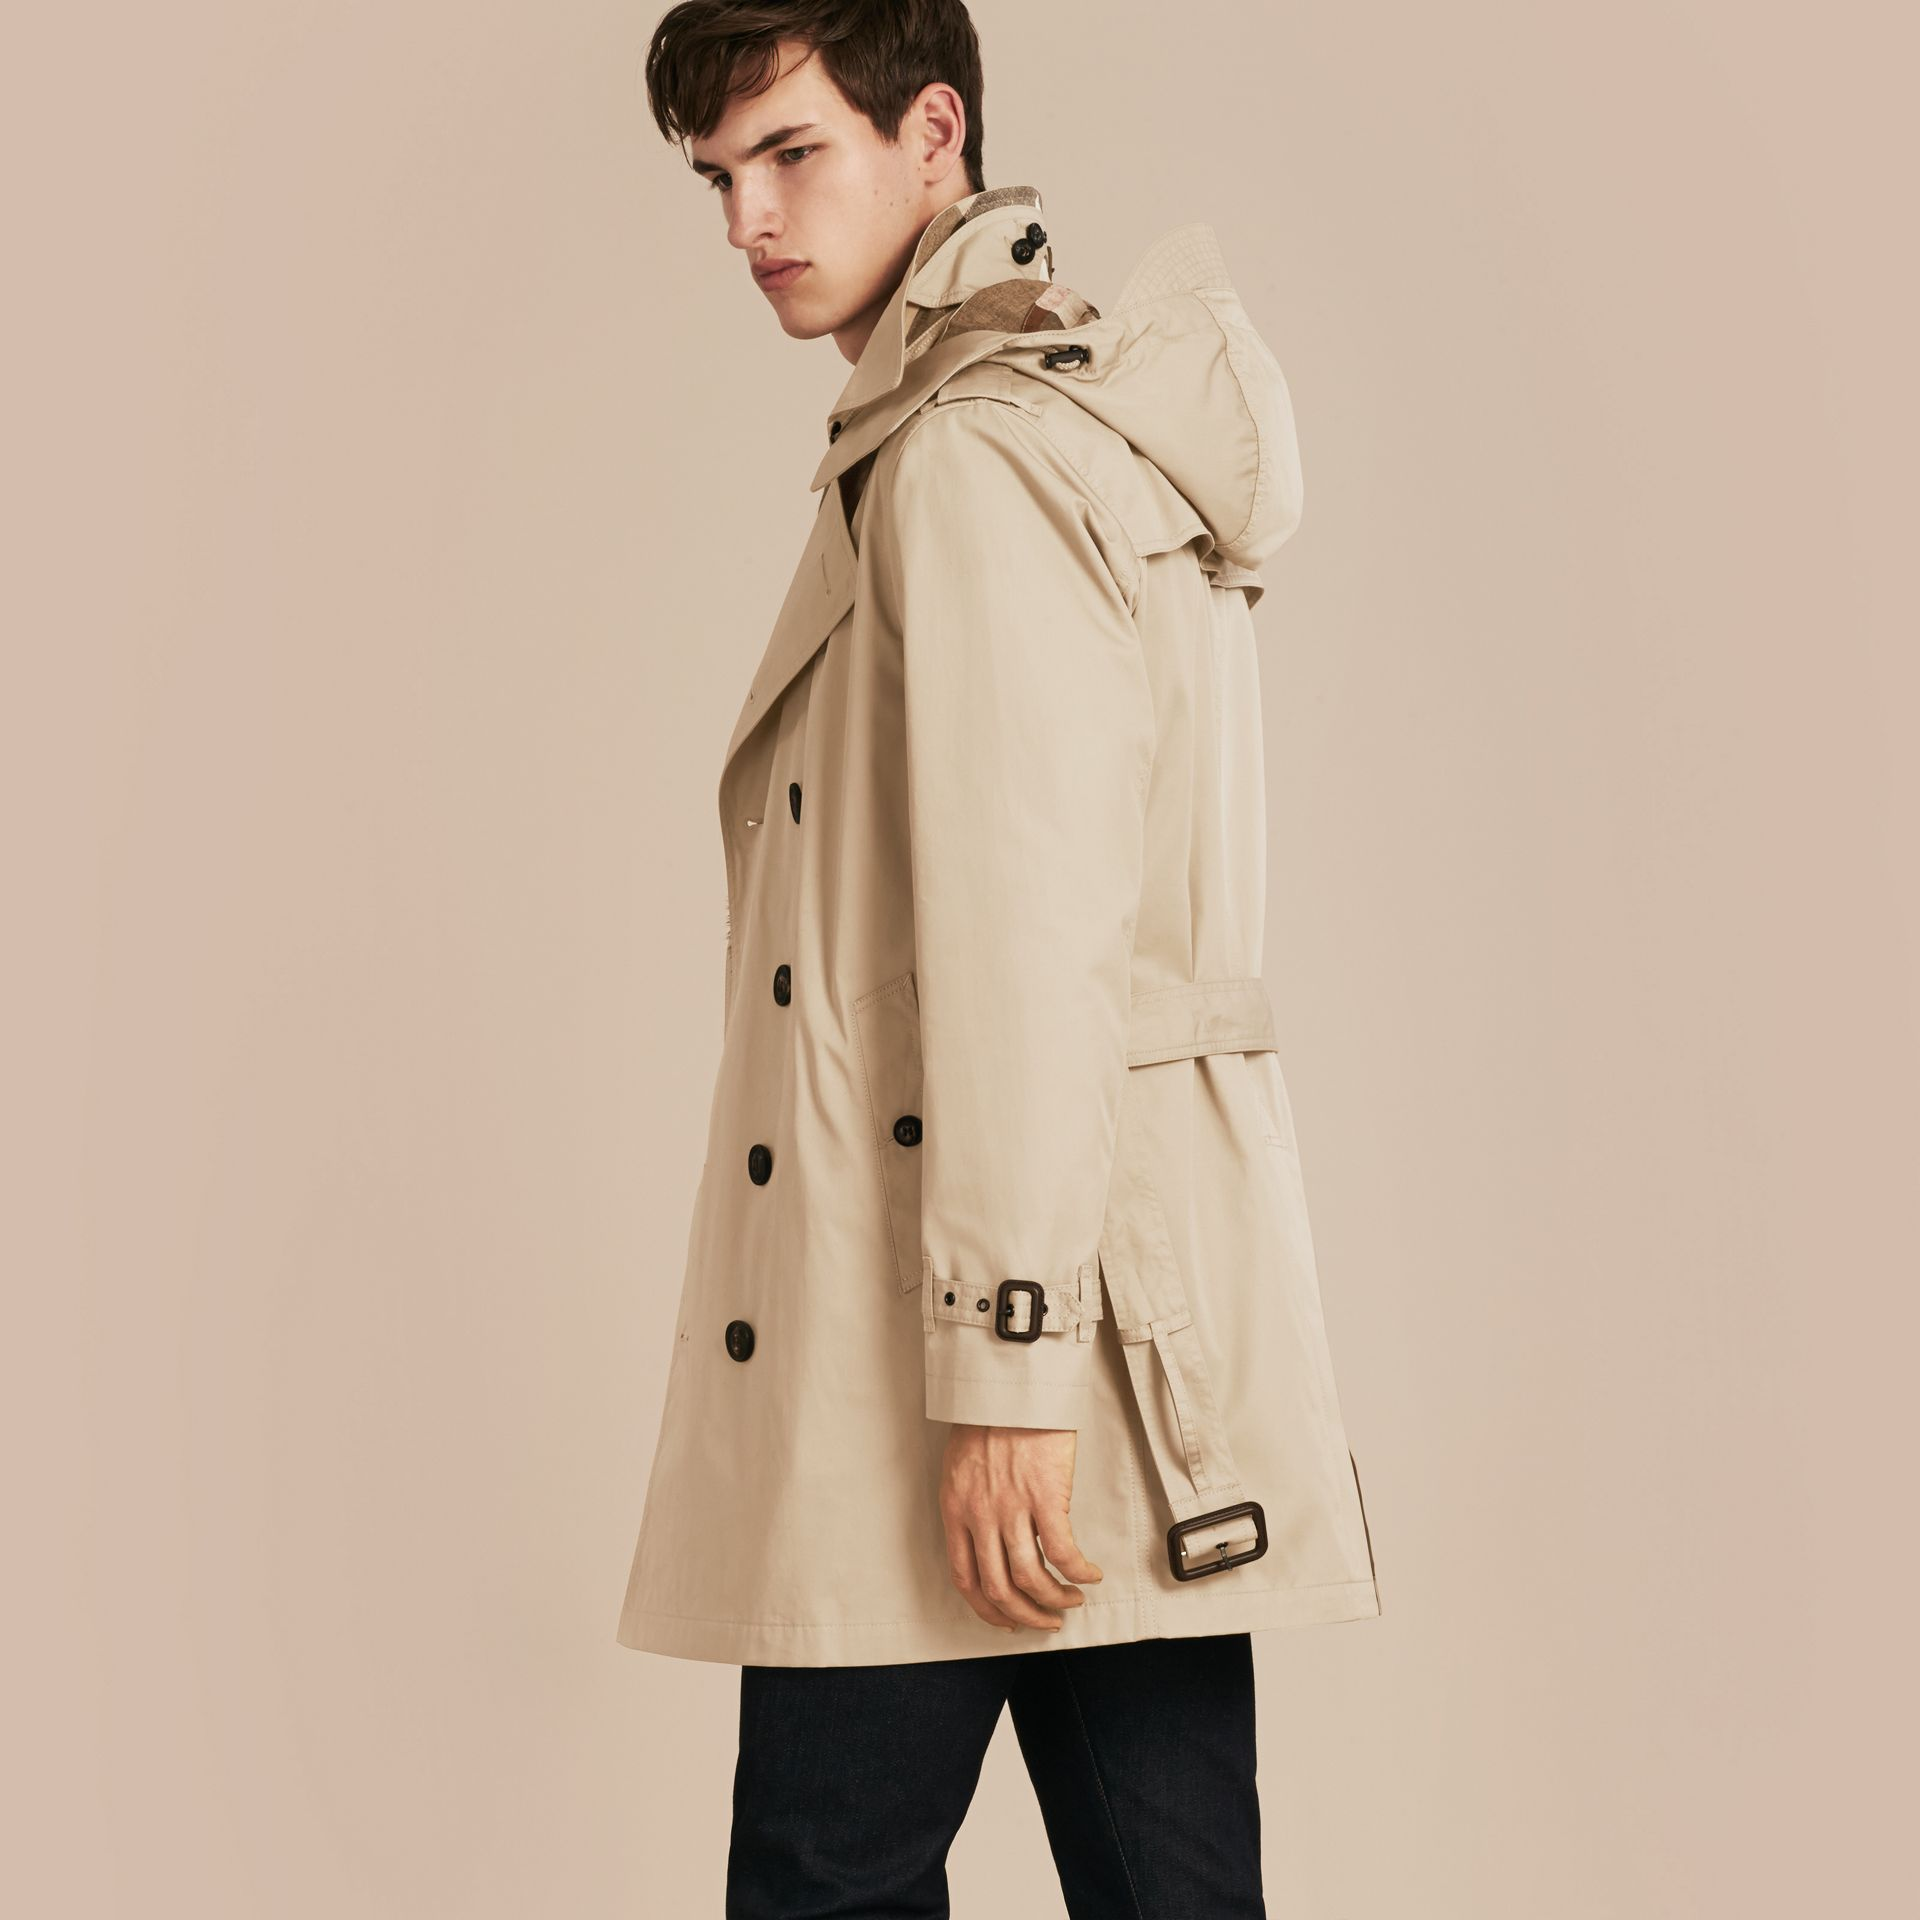 Taupe Cotton Trench Coat with Detachable Hood Taupe - gallery image 3